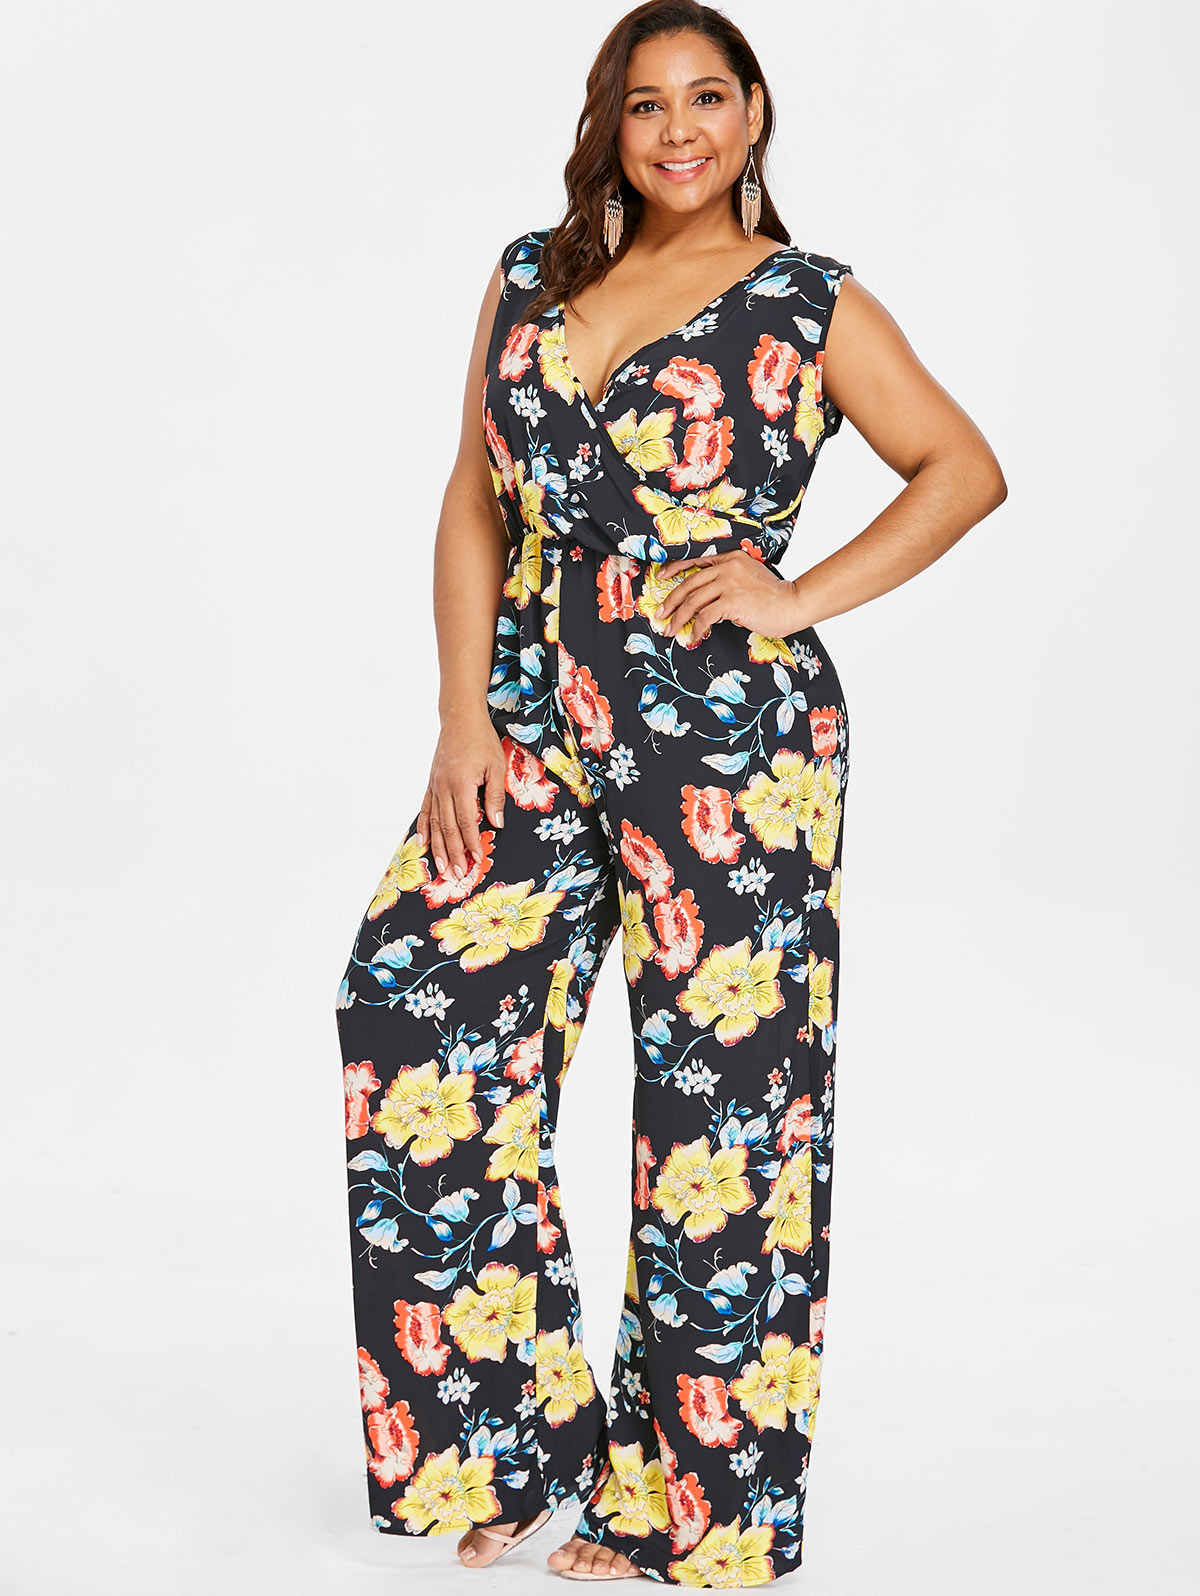 41ce39d556b6 Wipalo Plus Size Floral Floor-Length Straight Pockets Palazzo Jumpsuit  Sleeveless Plunging Neck Wide Leg